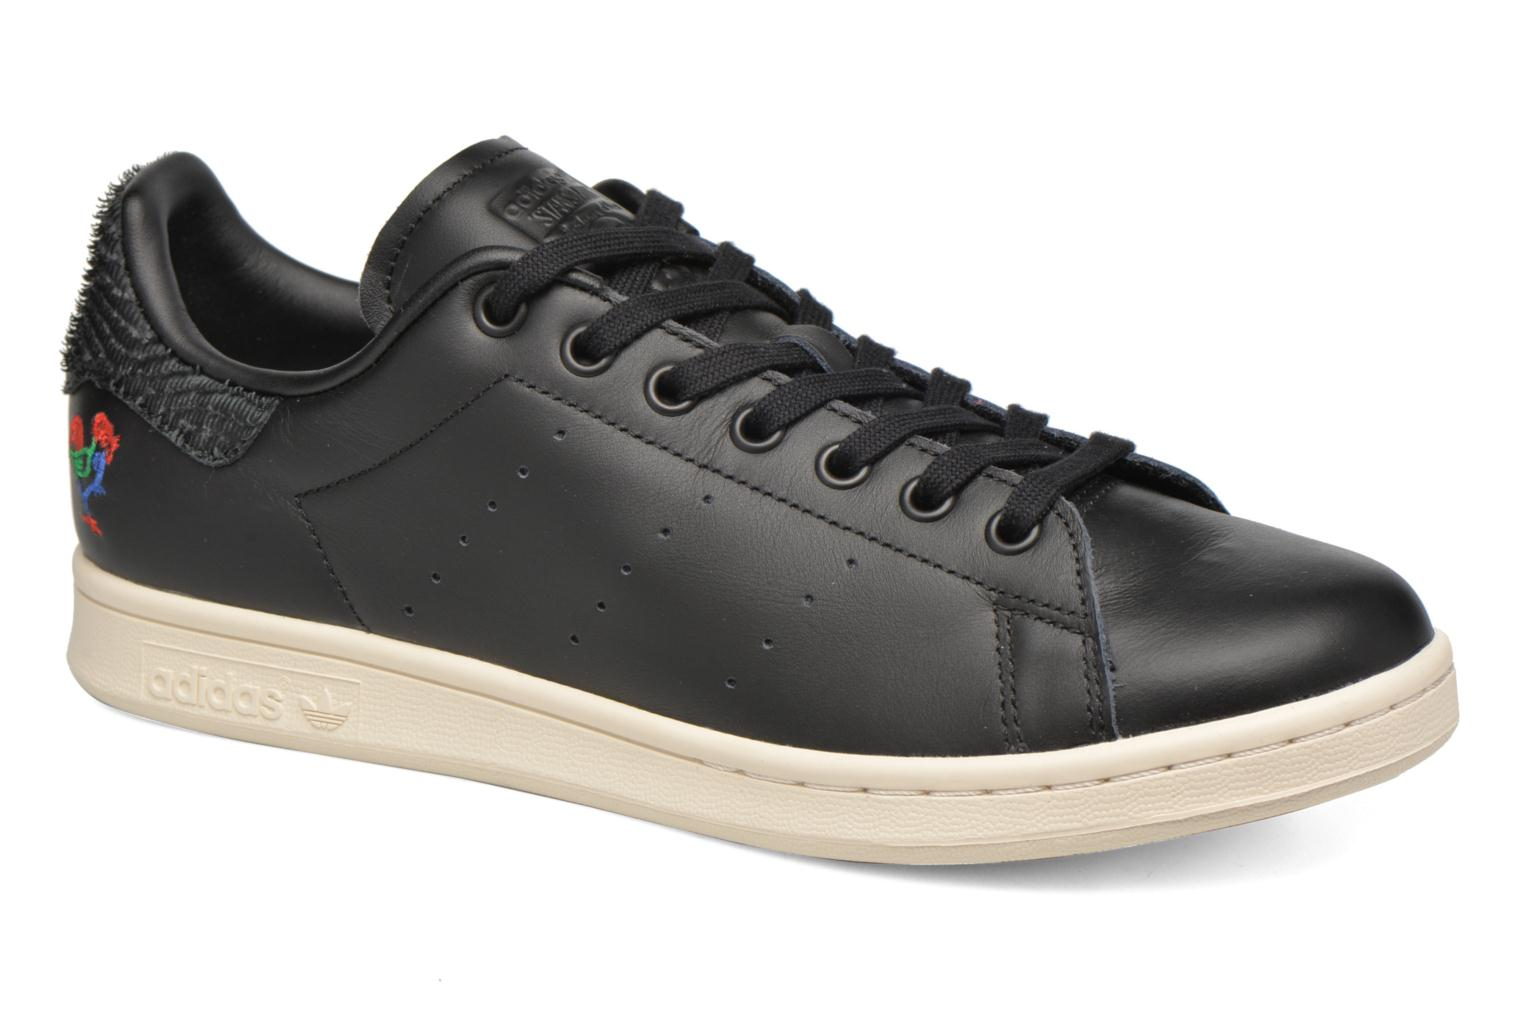 Stan Smith Cny Noiess/Noiess/Blacra